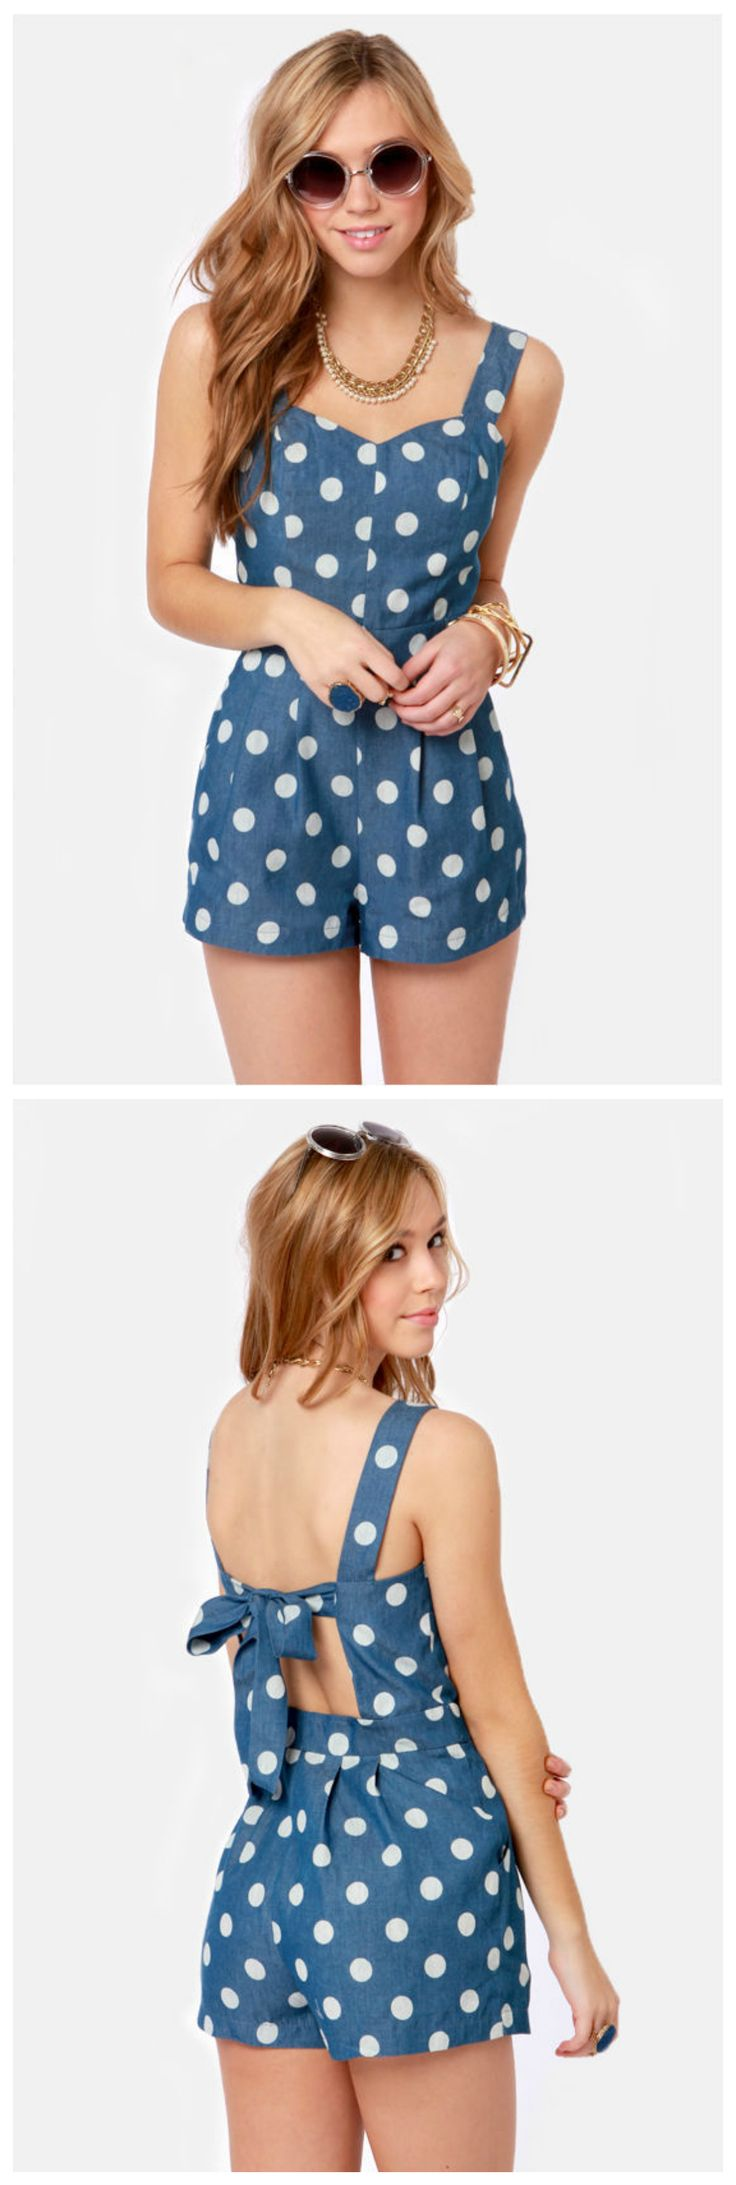 i can literally wear this anywhere... to the beach or to downtown! next stop beach on my ultimate dream road trip! #lulus #lulusrocktheroad #lulusrocktheroad Dot of the Bay Blue Polka Dot Romper via lulus.com